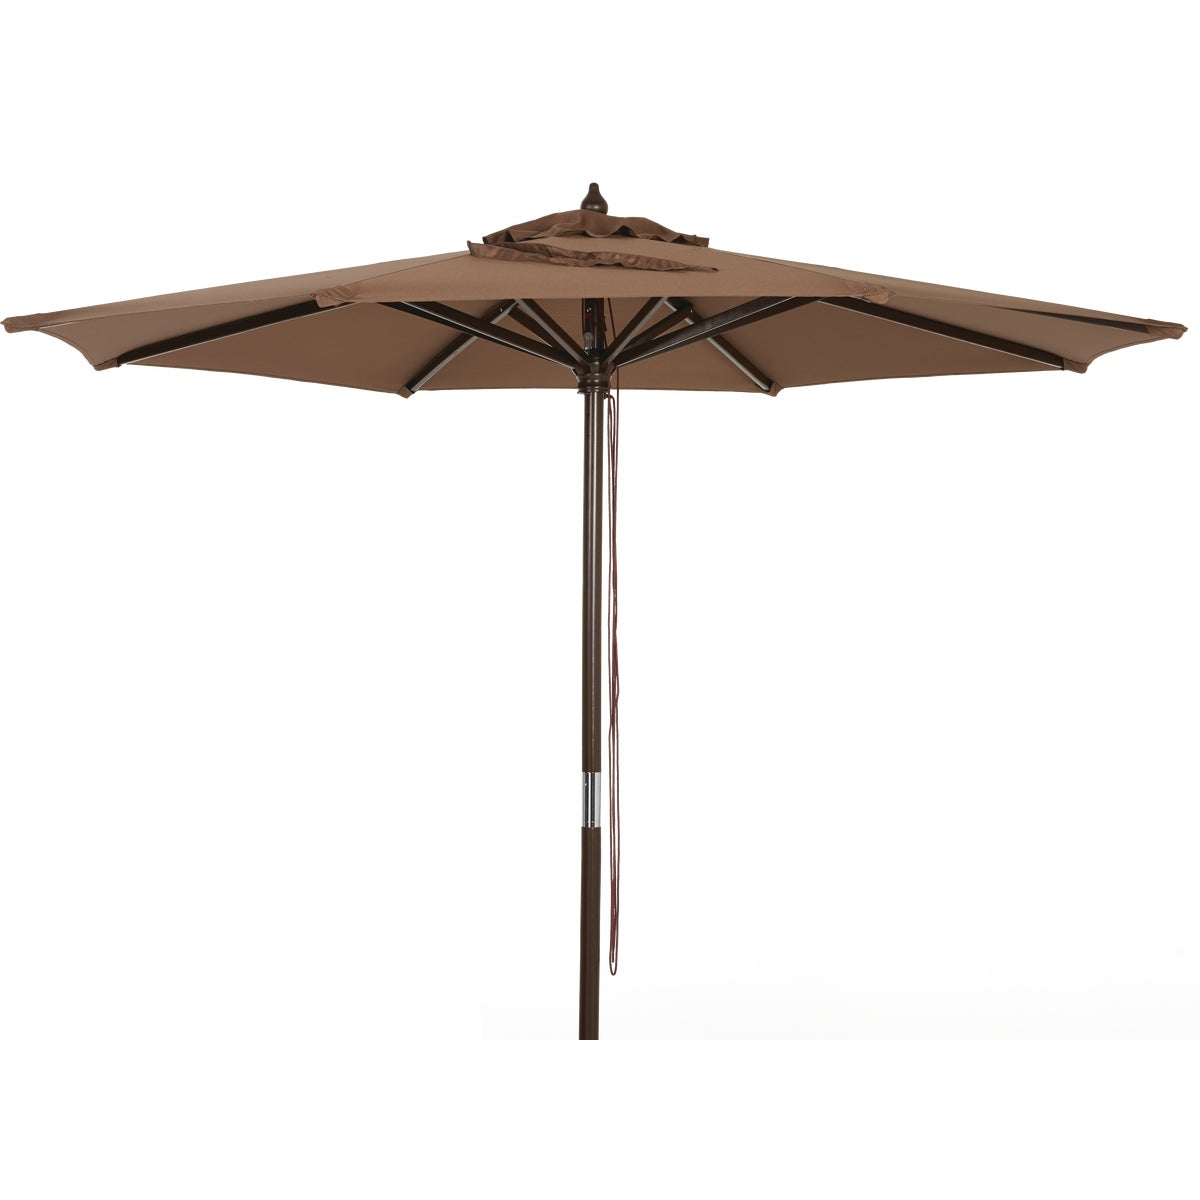 7.5' BRN MARKET UMBRELLA